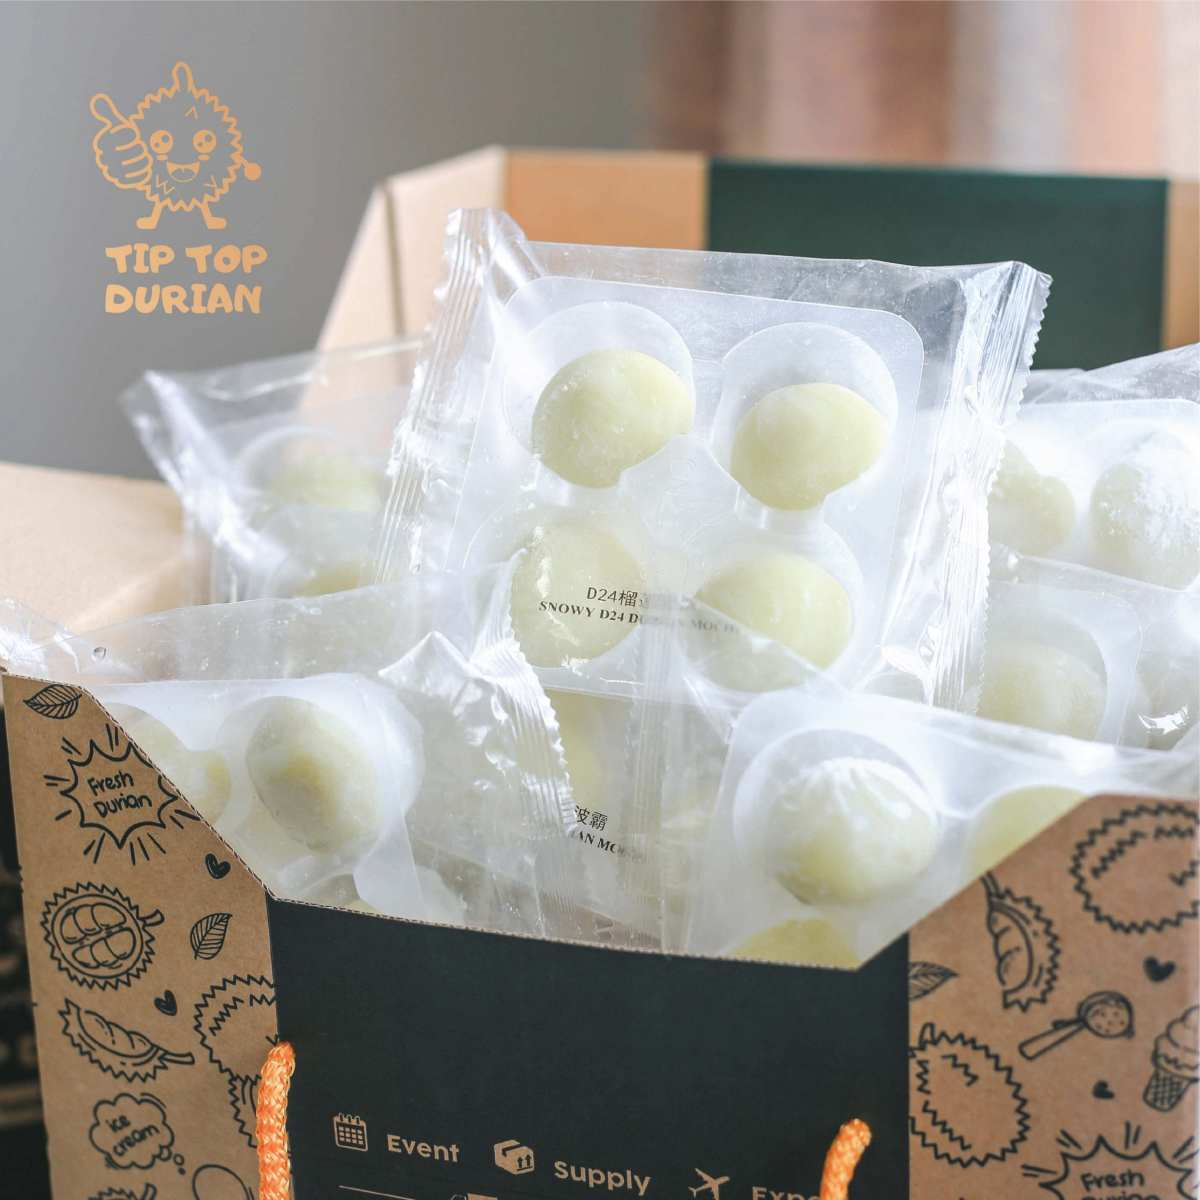 D24 Durian Mochi 10 Packs (1) | Tip Top Durian Delivery | Malaysia Top Fresh Durian Online Delivery